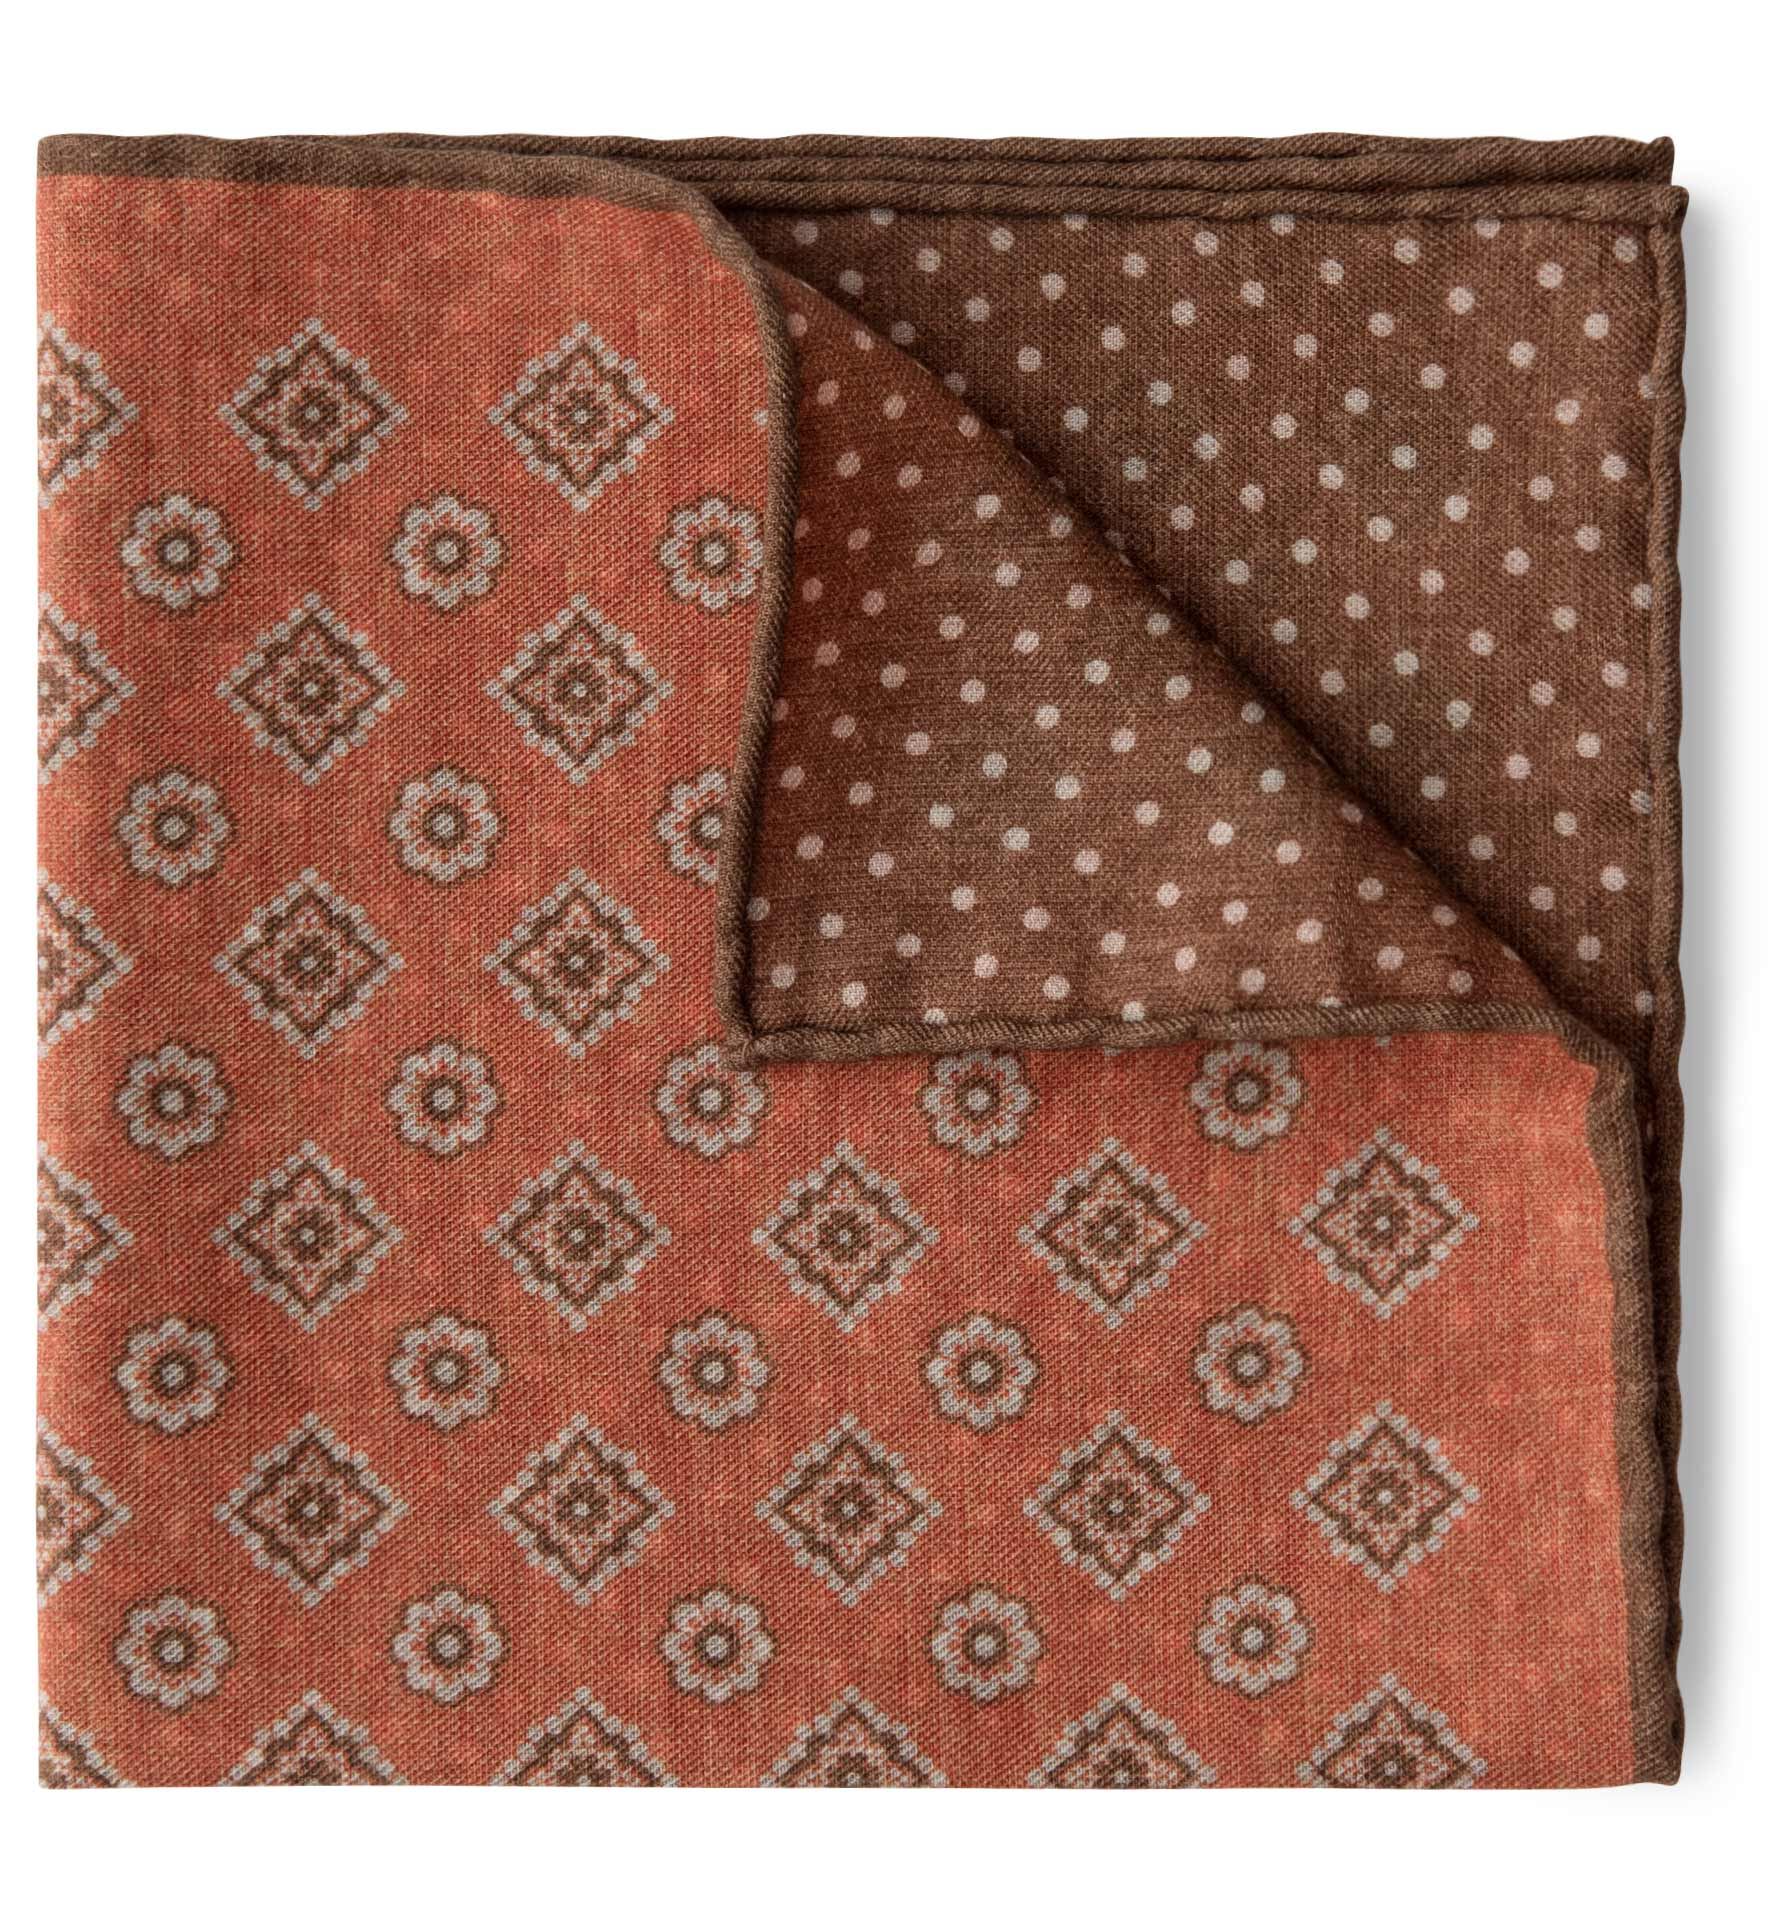 Zoom Image of Orange and Brown Foulard Print Pocket Square